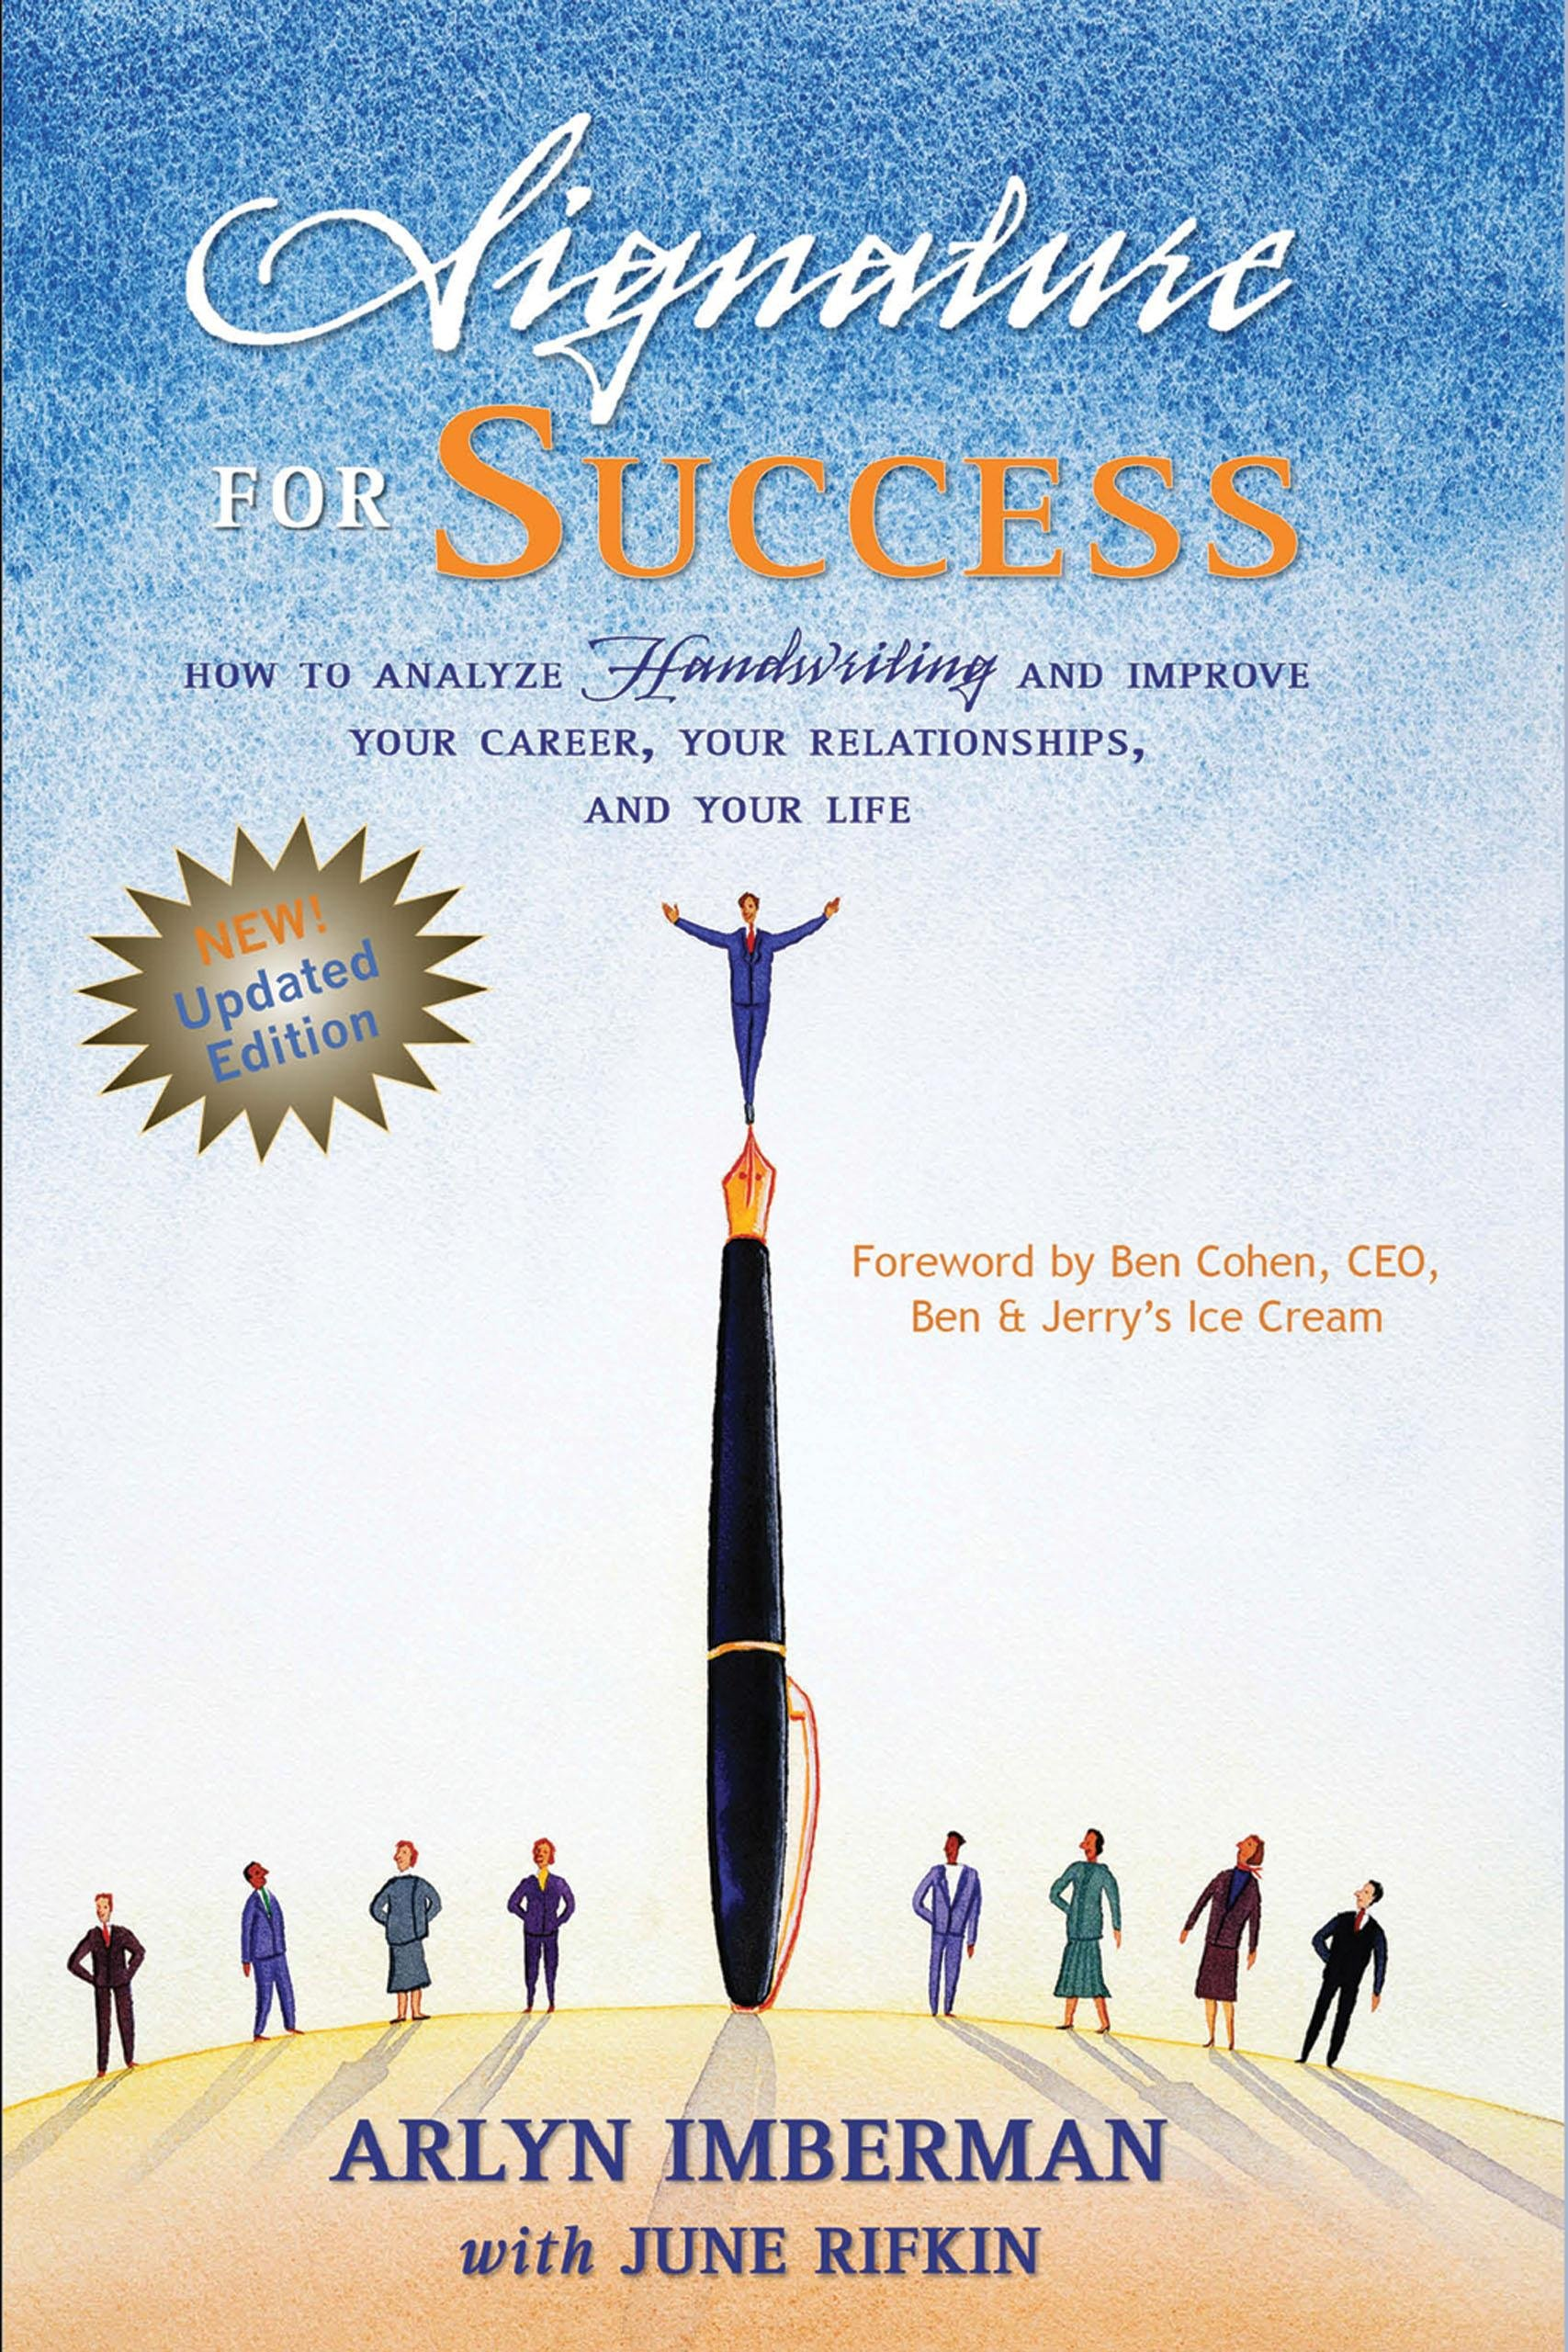 signature for success how to analyze handwriting and improve your signature for success how to analyze handwriting and improve your career your relationships and your life arlyn imberman rifkin 9781884956843